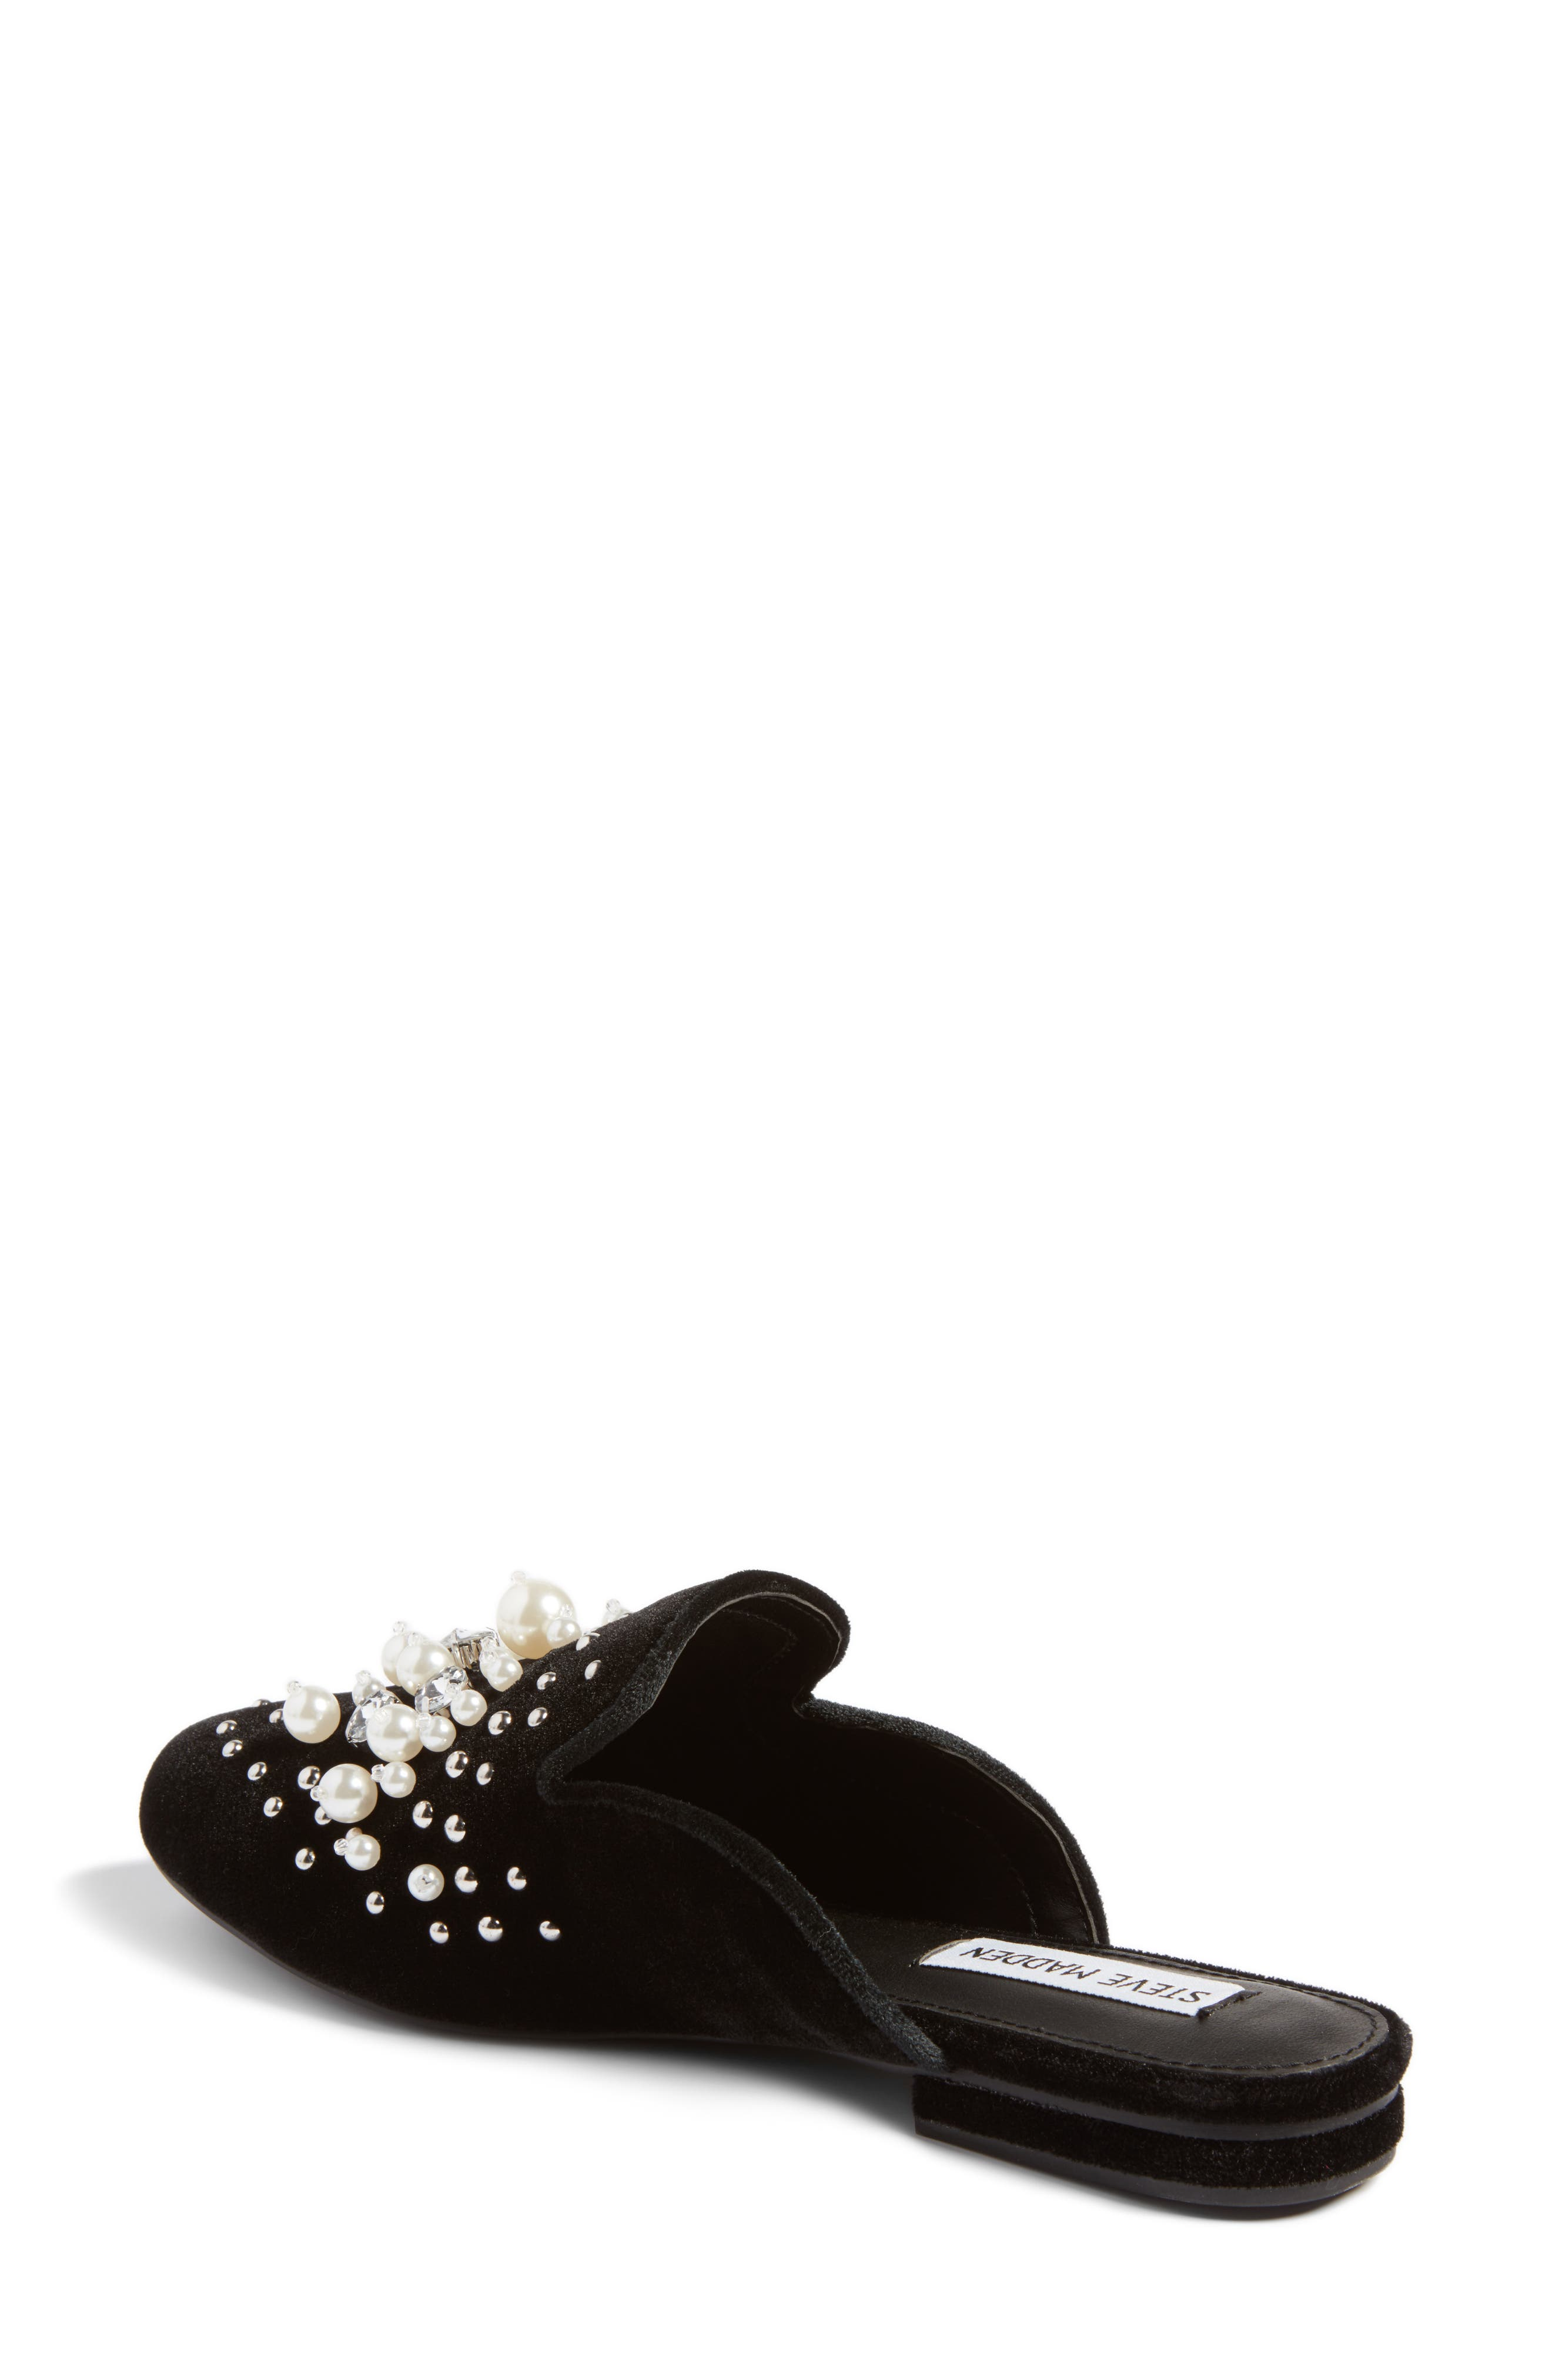 Alternate Image 2  - Steve Madden Imitation Pearl Embellished Mule (Women)